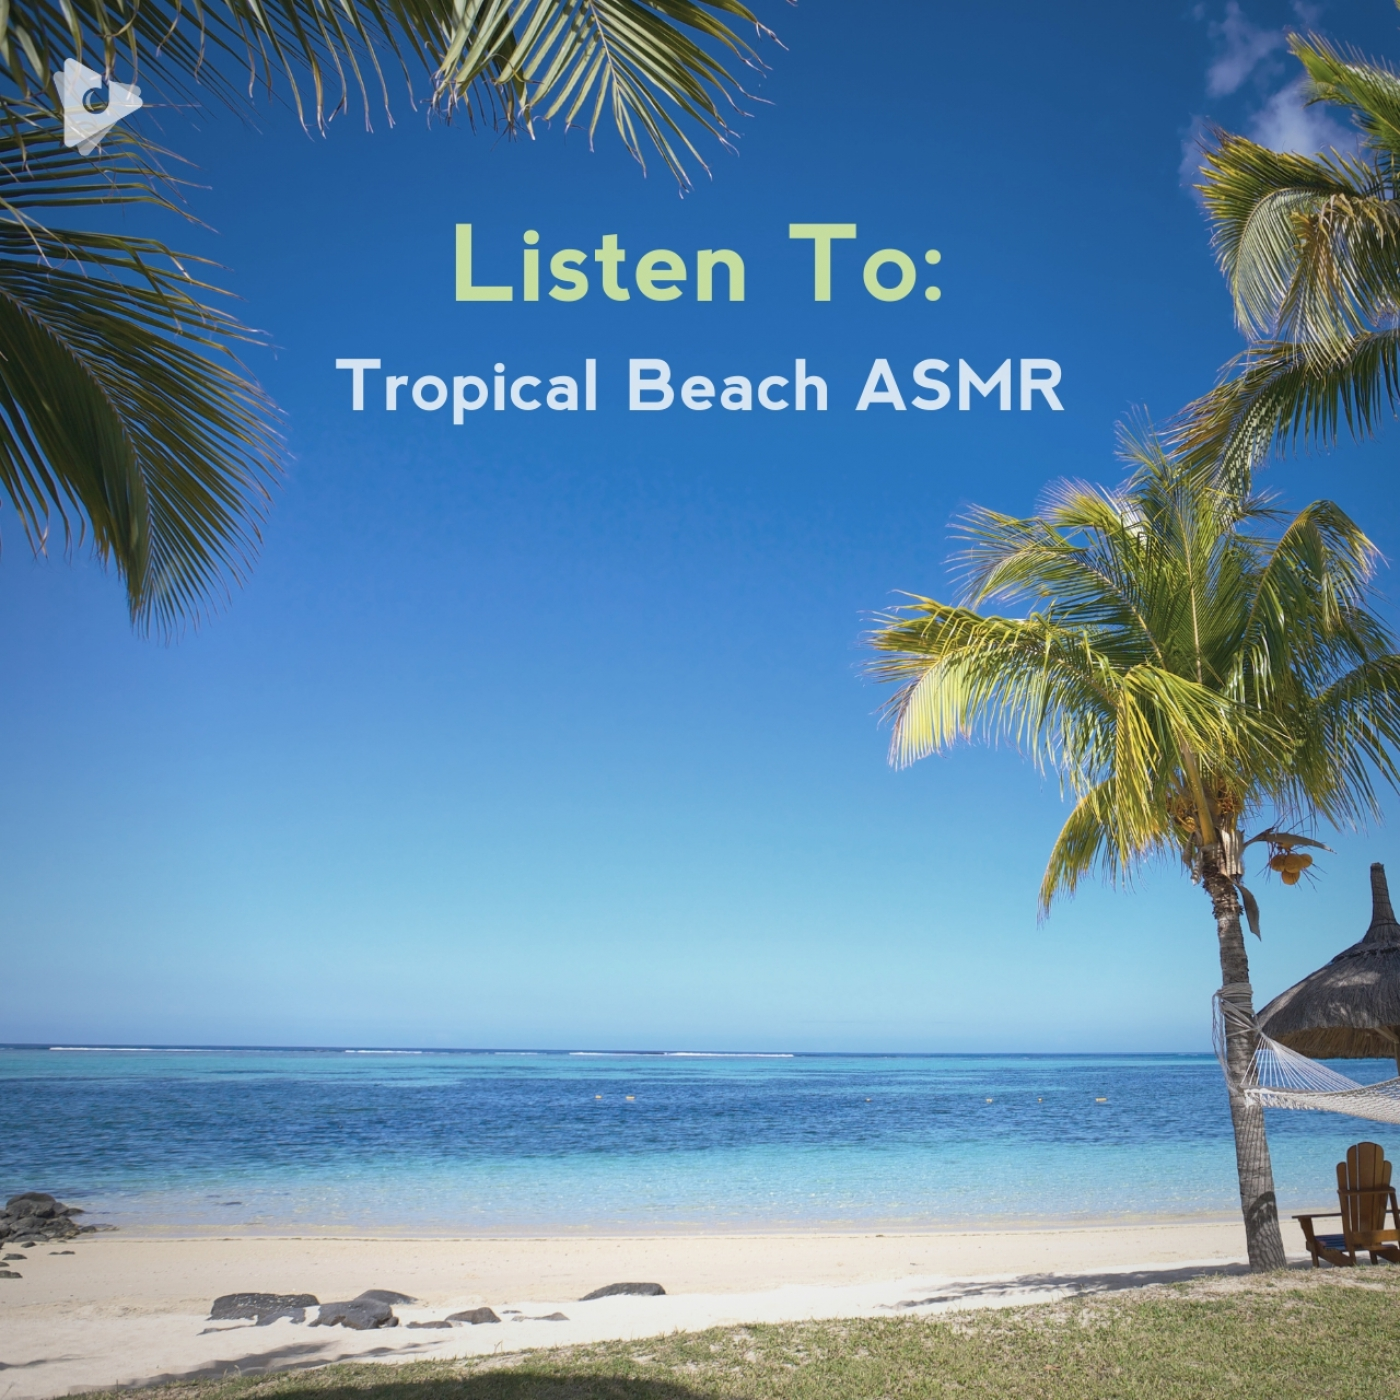 Listen To: Tropical Beach ASMR